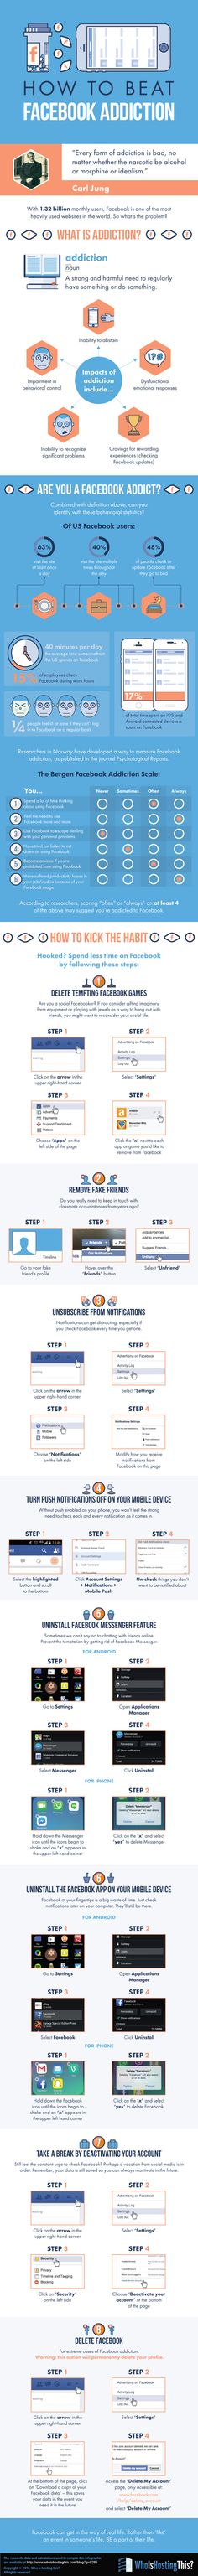 Are you addicted to Facebook? Here is an 8-step program infographic: How To Beat Facebook Addiction. The best part is no health insurance is required. [Infographic, Social Media] #NerdMentor